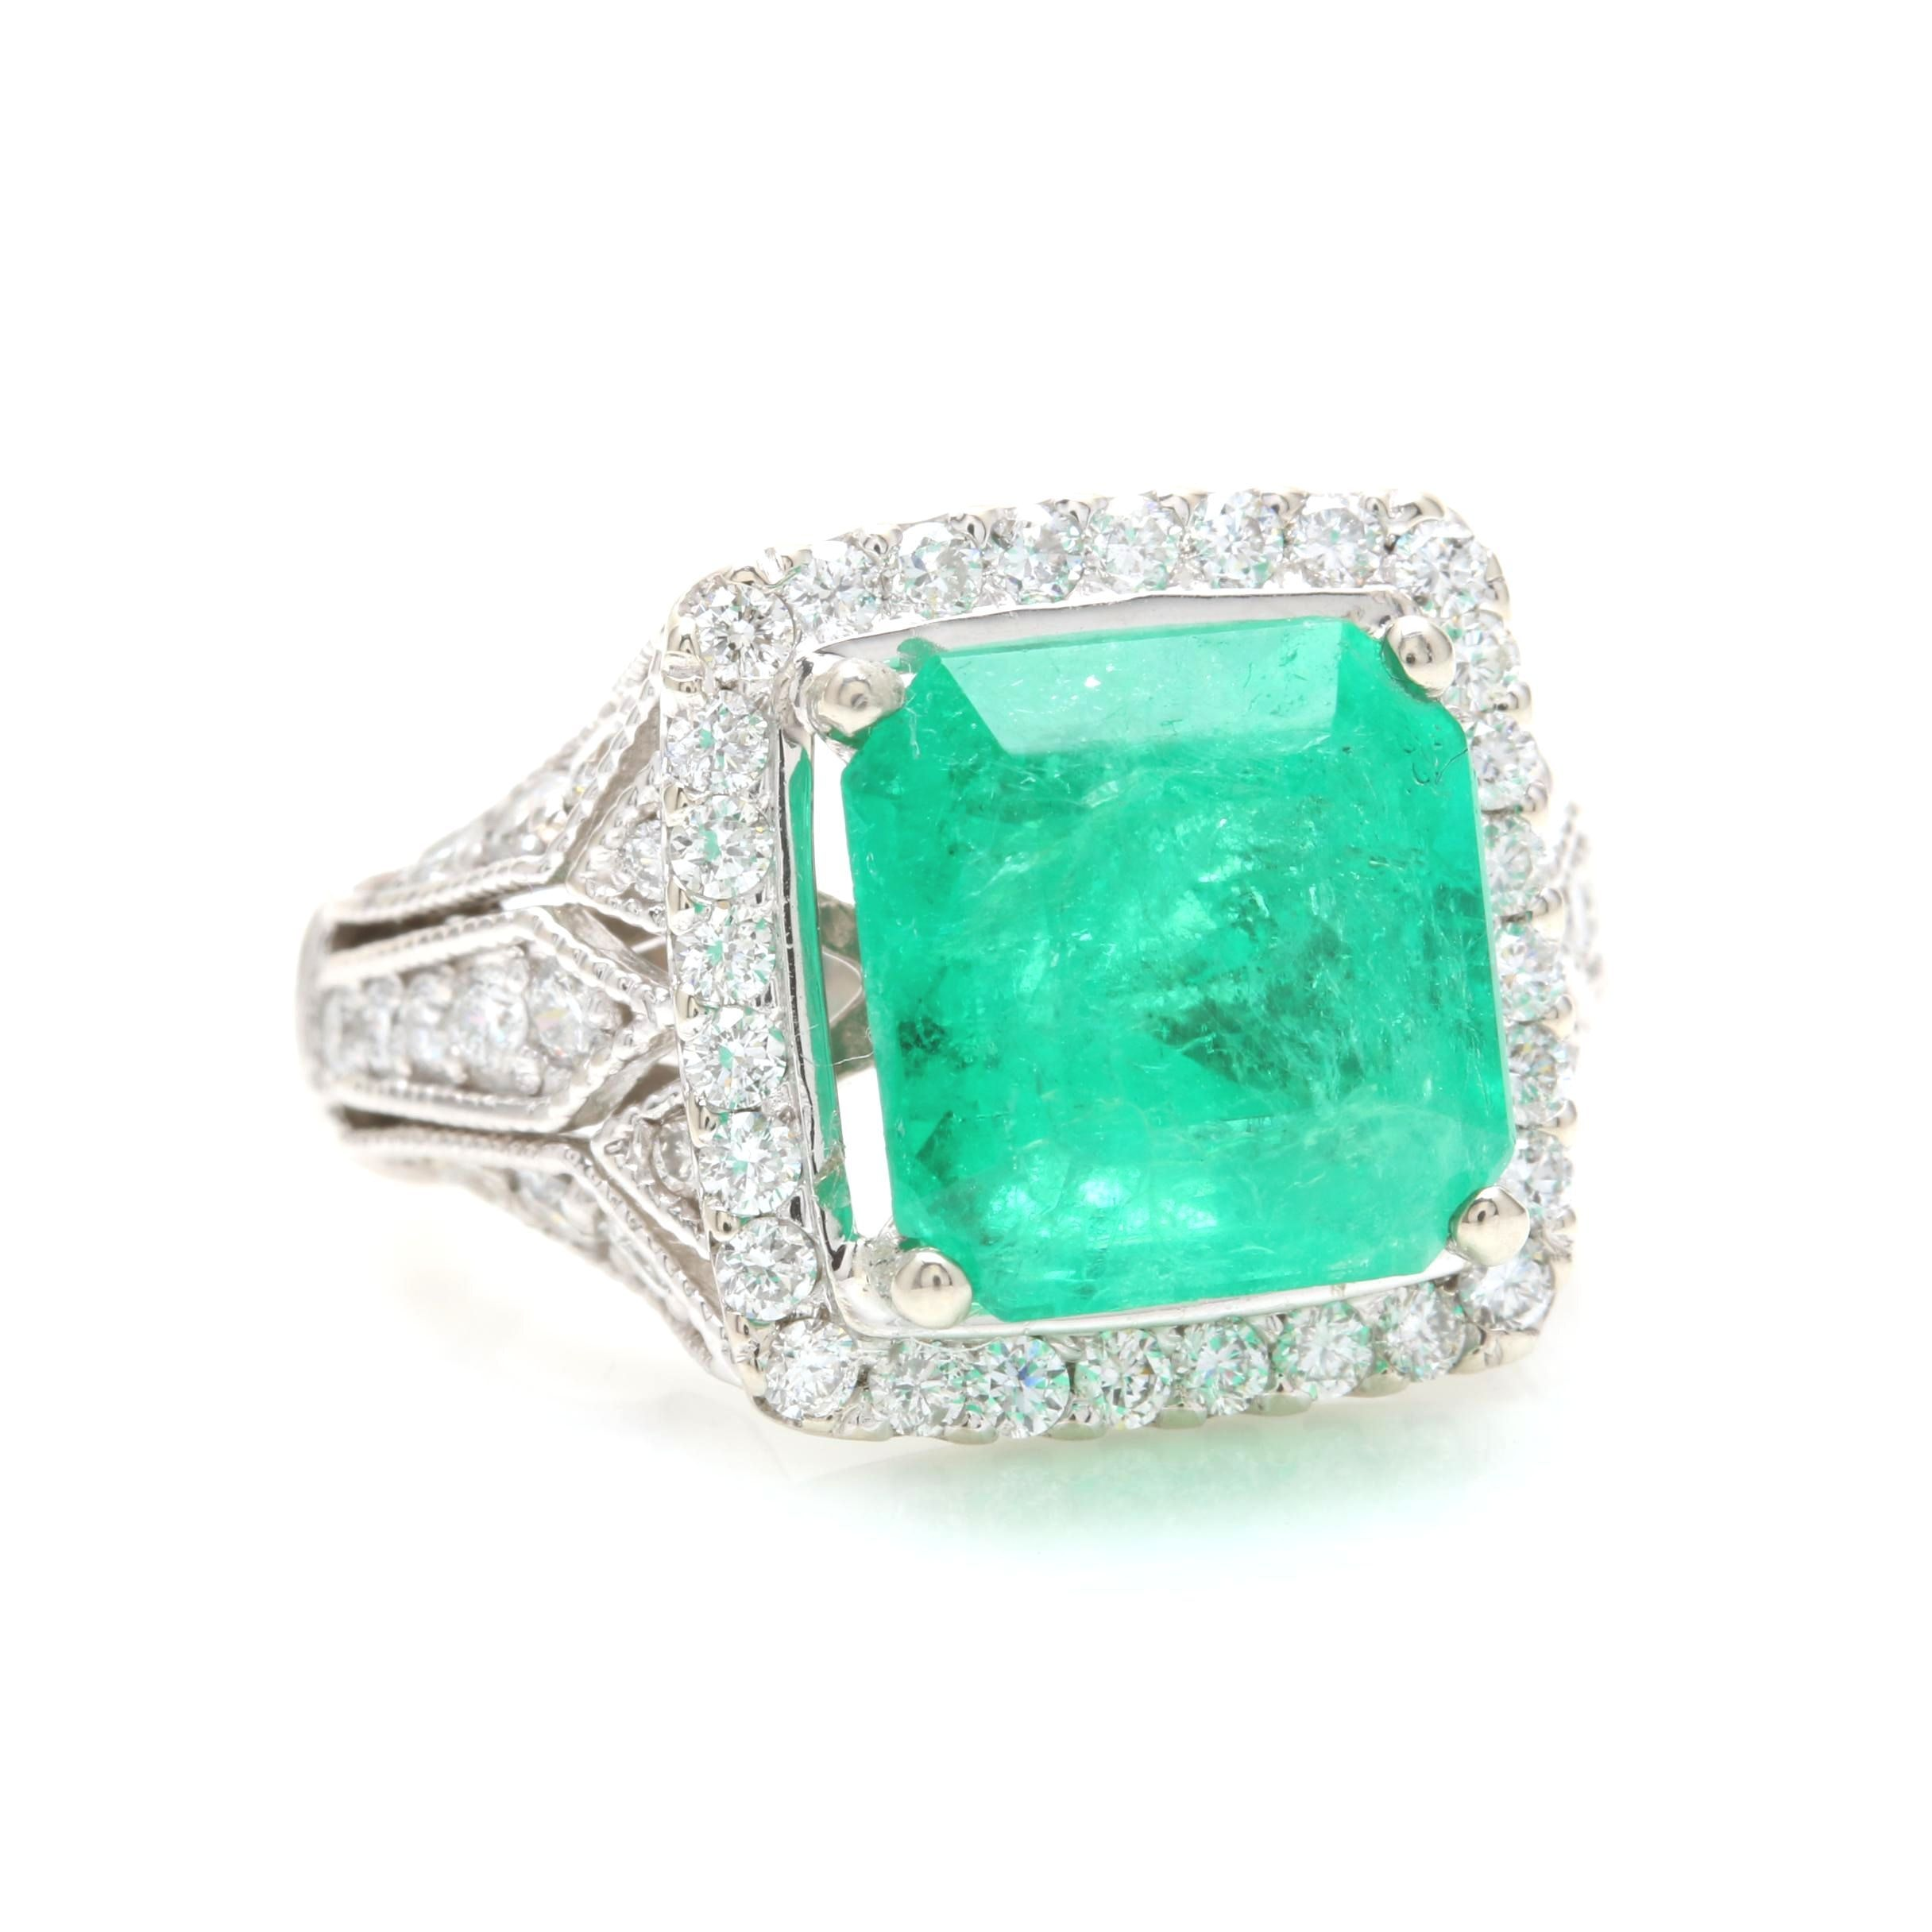 14K White Gold 7.72 CT Emerald and 1.33 CTW Diamond Ring